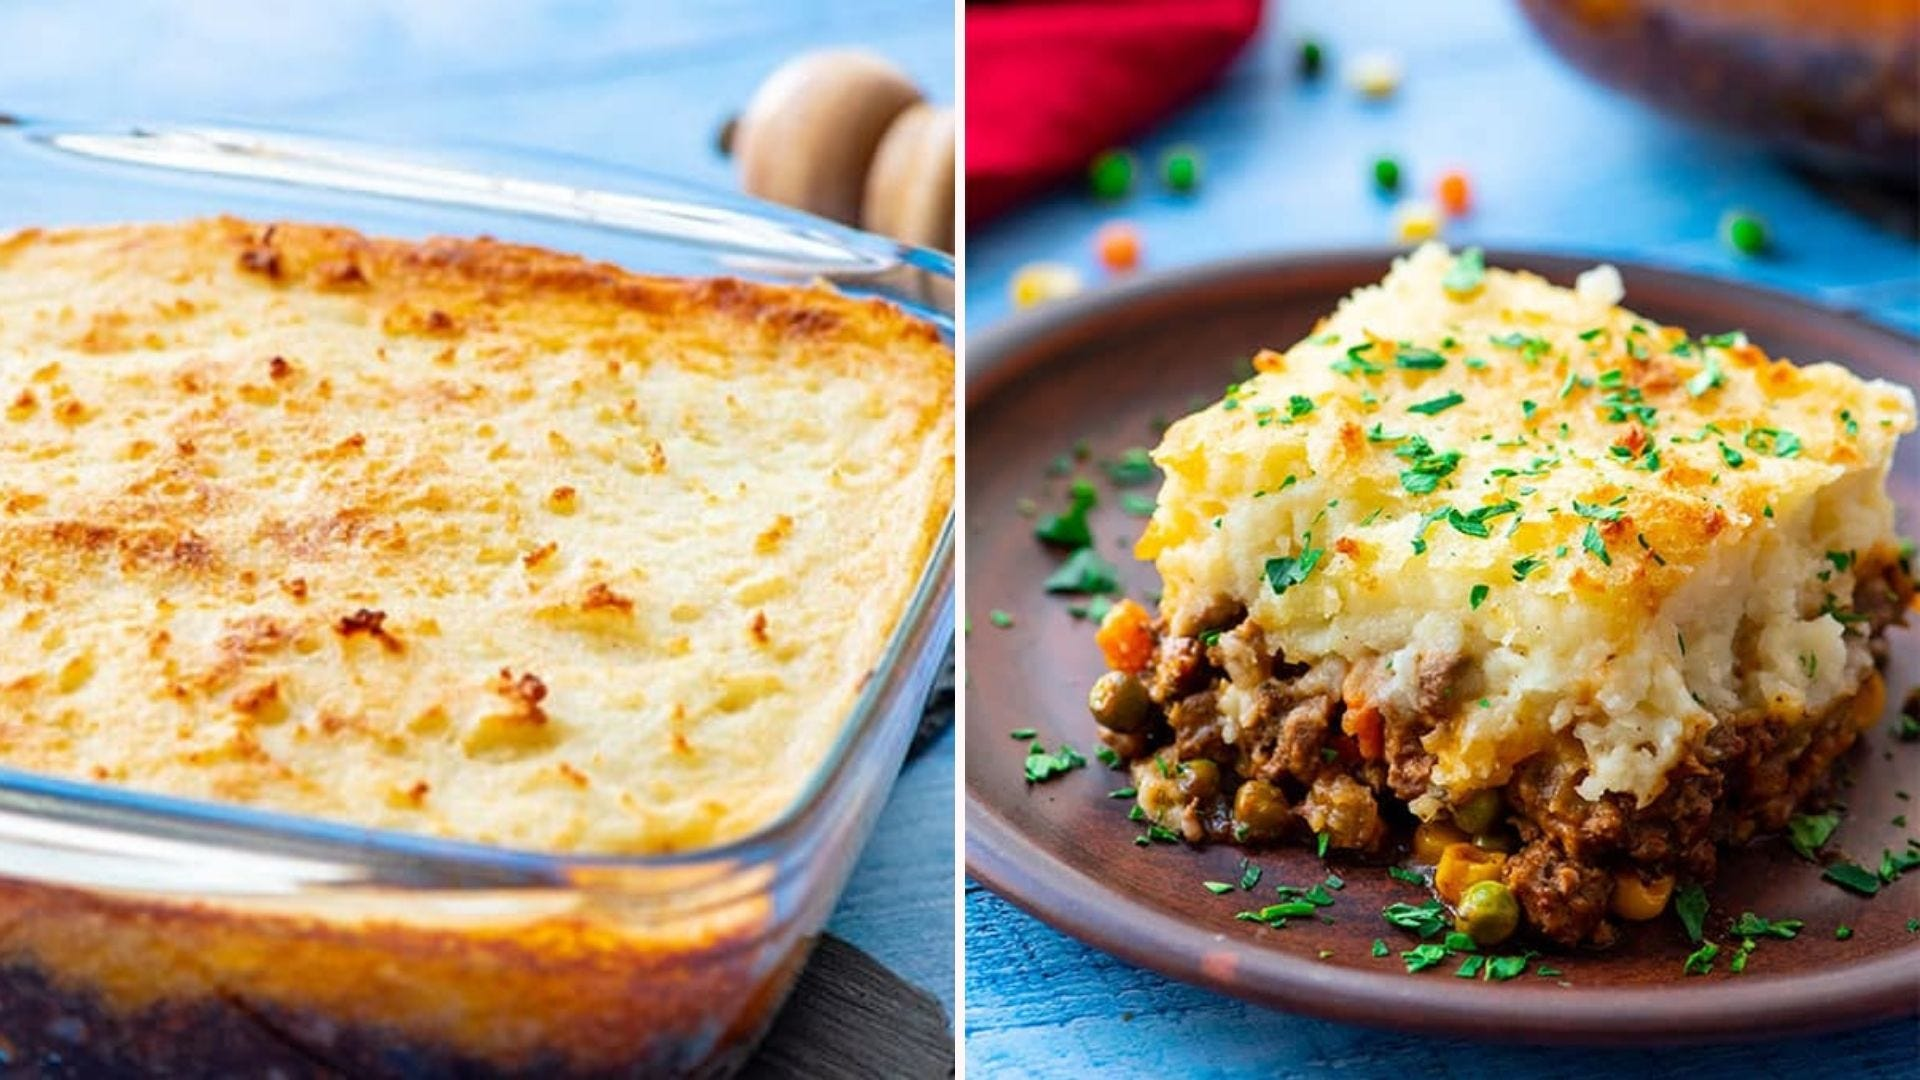 A classic shepherds pie in a casserole dish, and a square piece on a plate topped with fresh parsley.